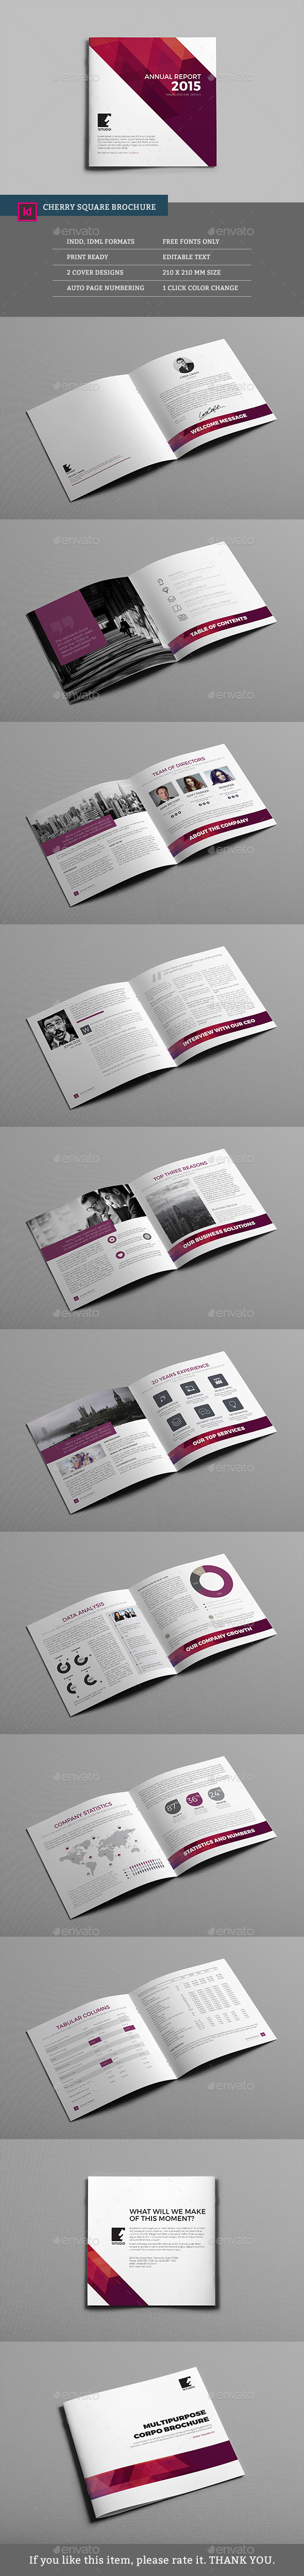 Cherry Square Multipurpose Brochure - Corporate Brochures